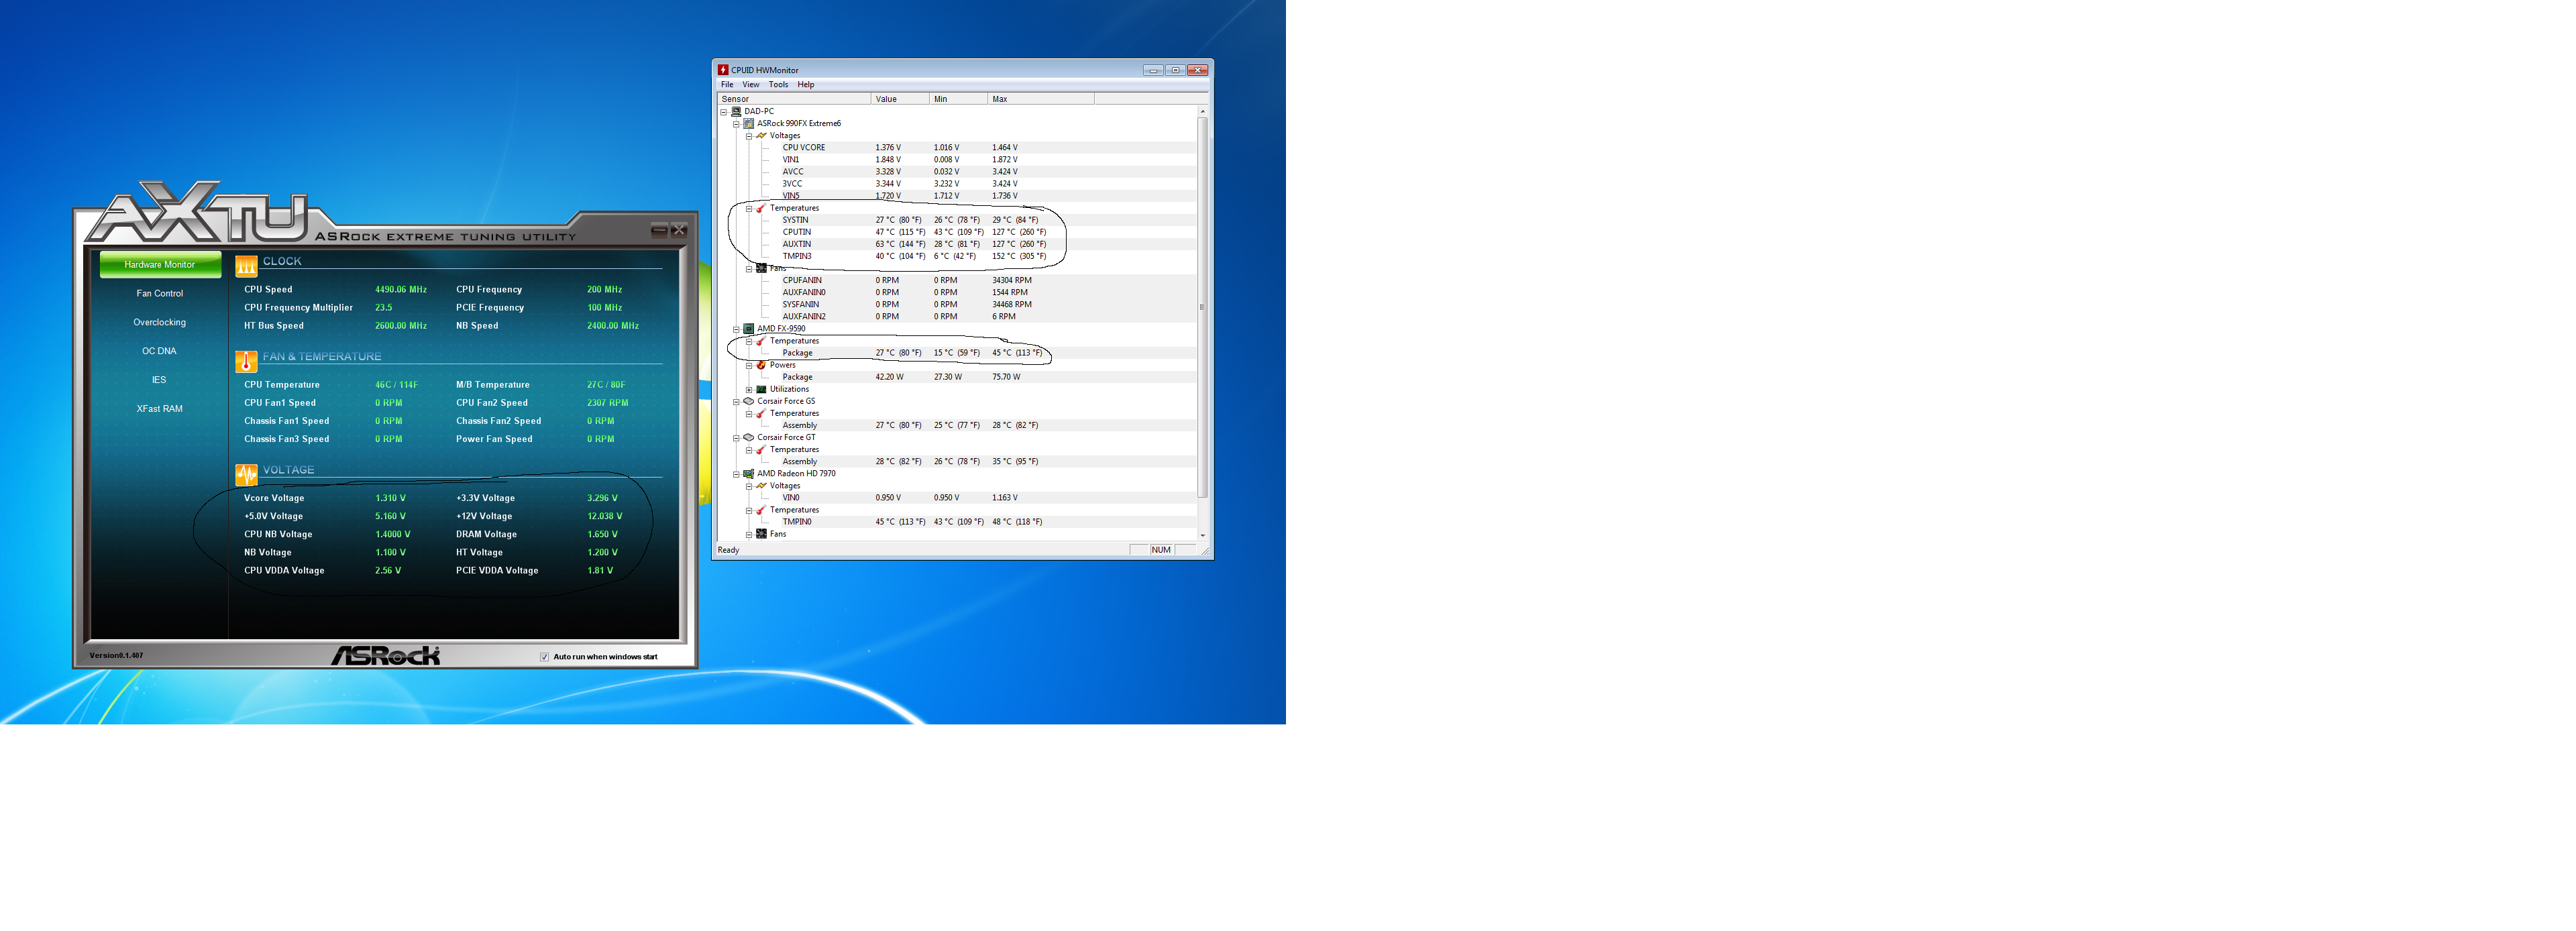 CPUID HWMonitor temps are HIGH - Overclock net - An Overclocking